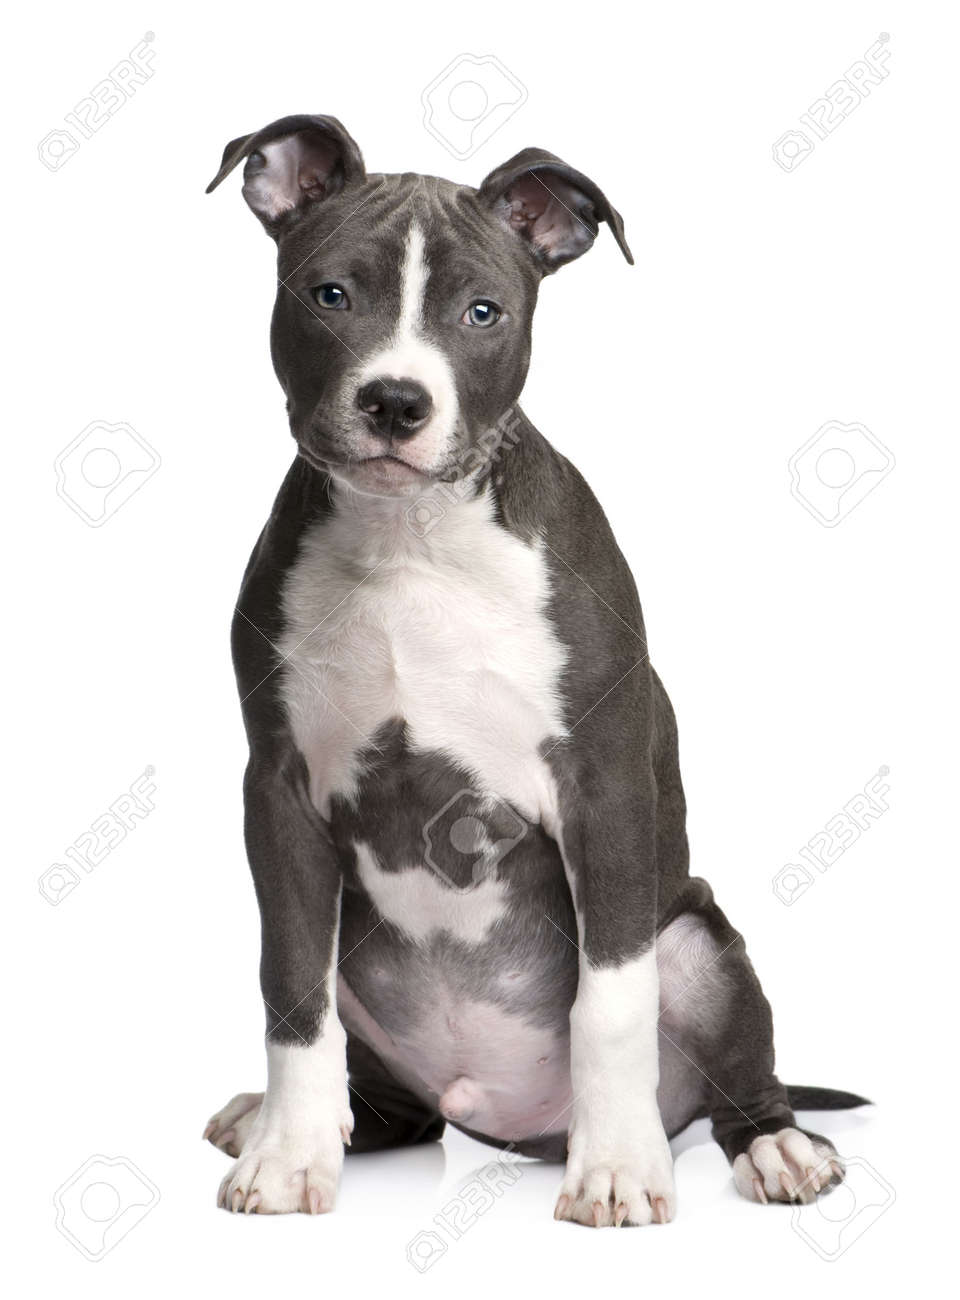 American Staffordshire terrier puppy (3 months) in front of a white  background Stock Photo